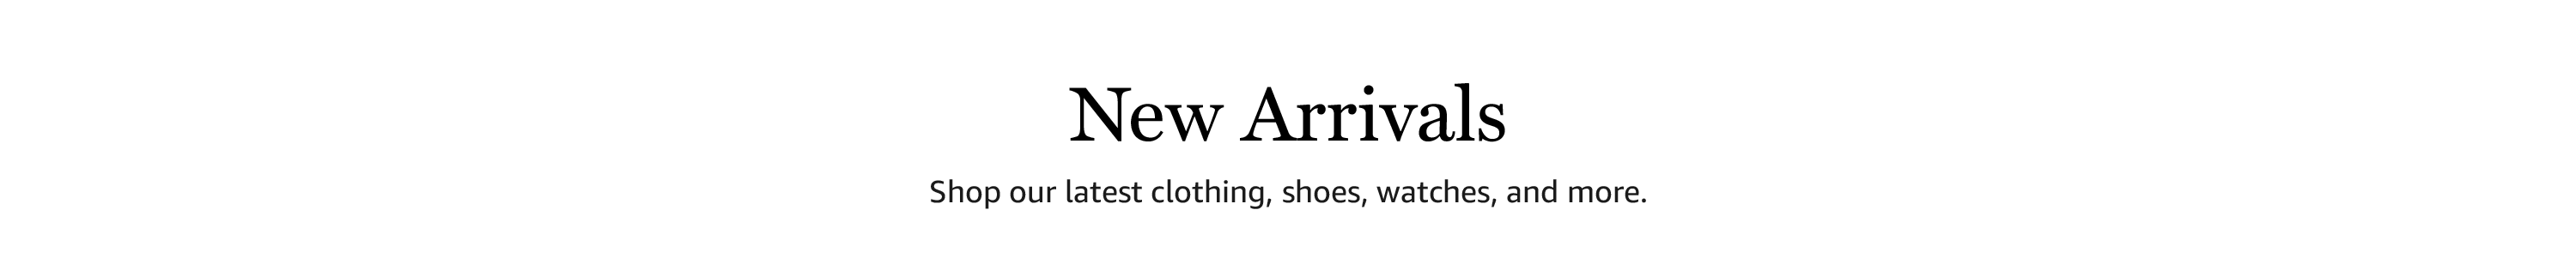 New Arrival: Shop our latest clothing, shoes, watches, and more.